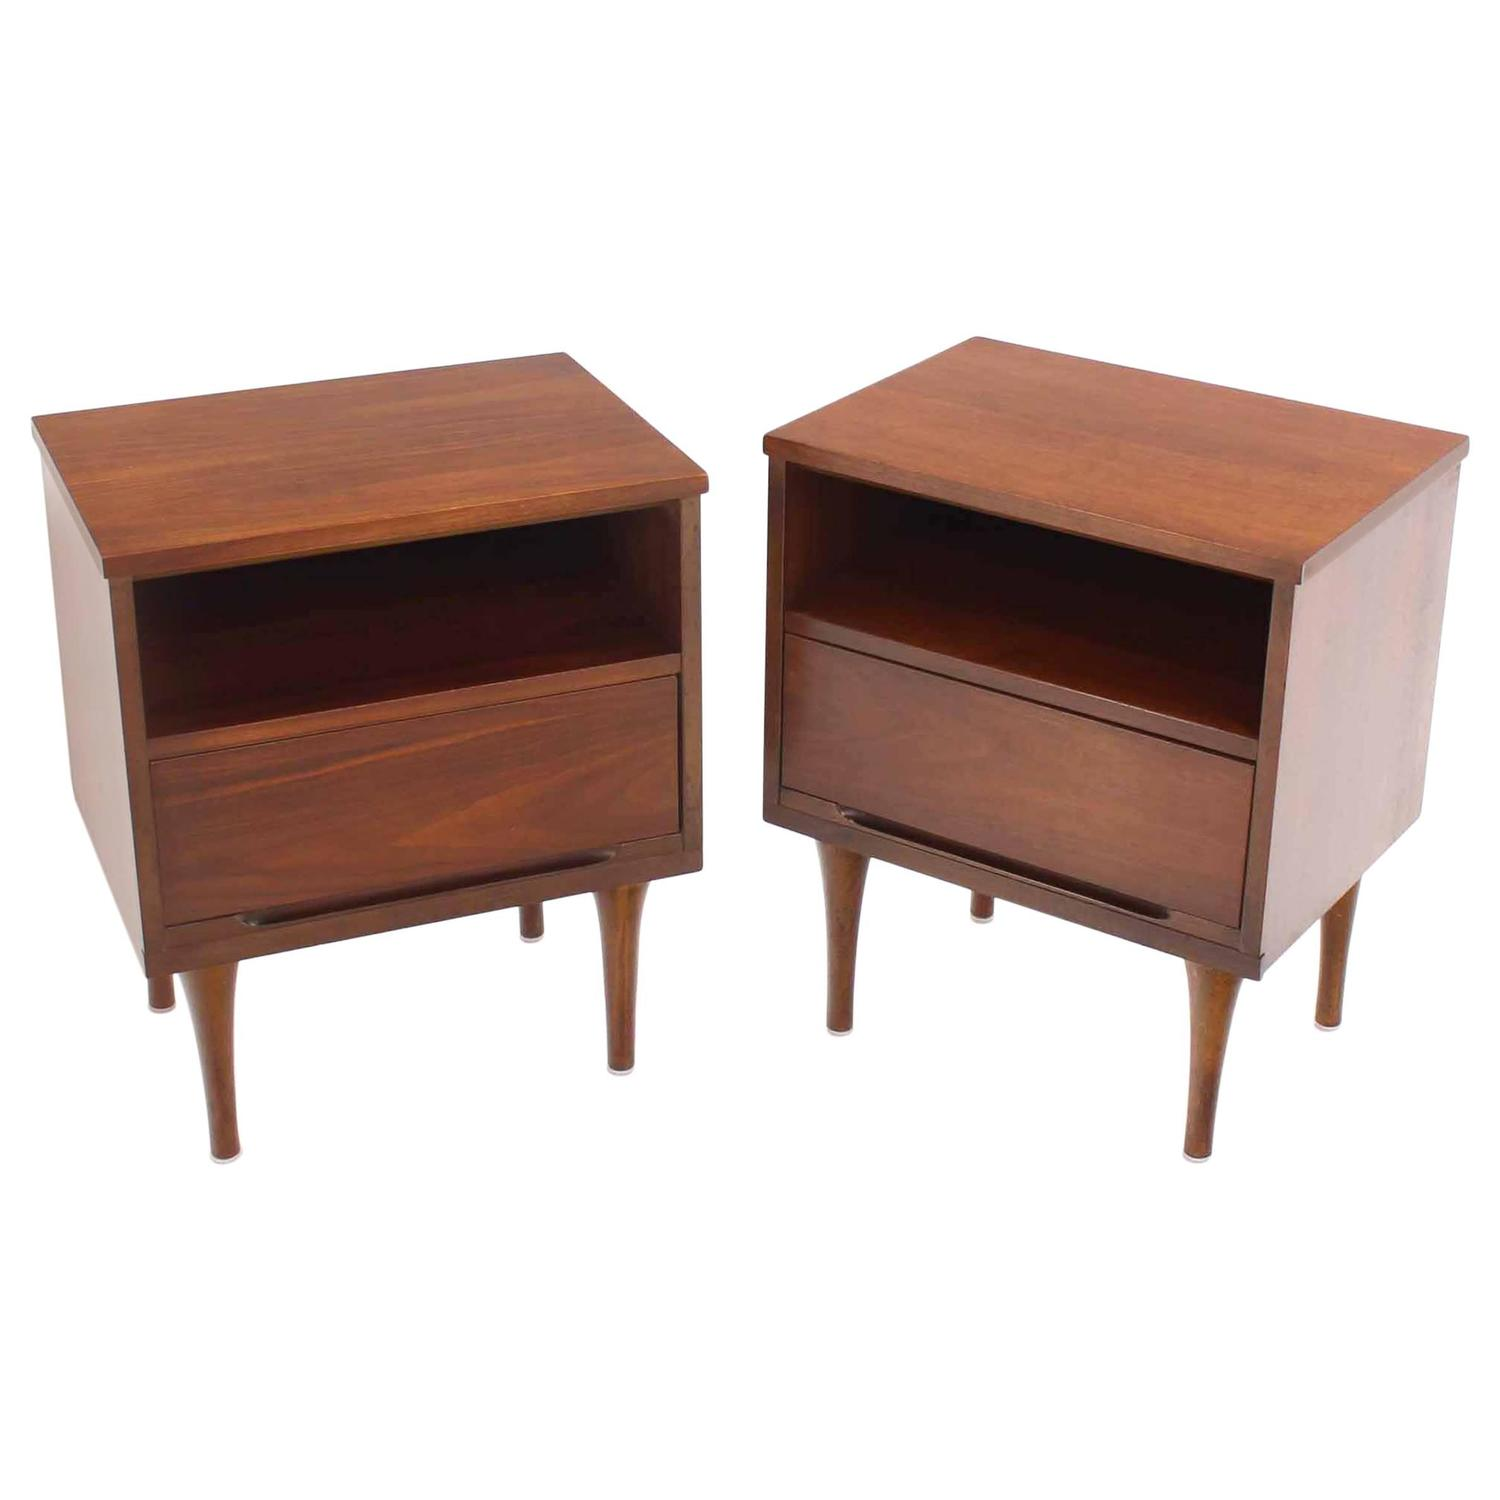 pair of mid century walnut one drawer end tables nightstands for sale at 1stdibs. Black Bedroom Furniture Sets. Home Design Ideas